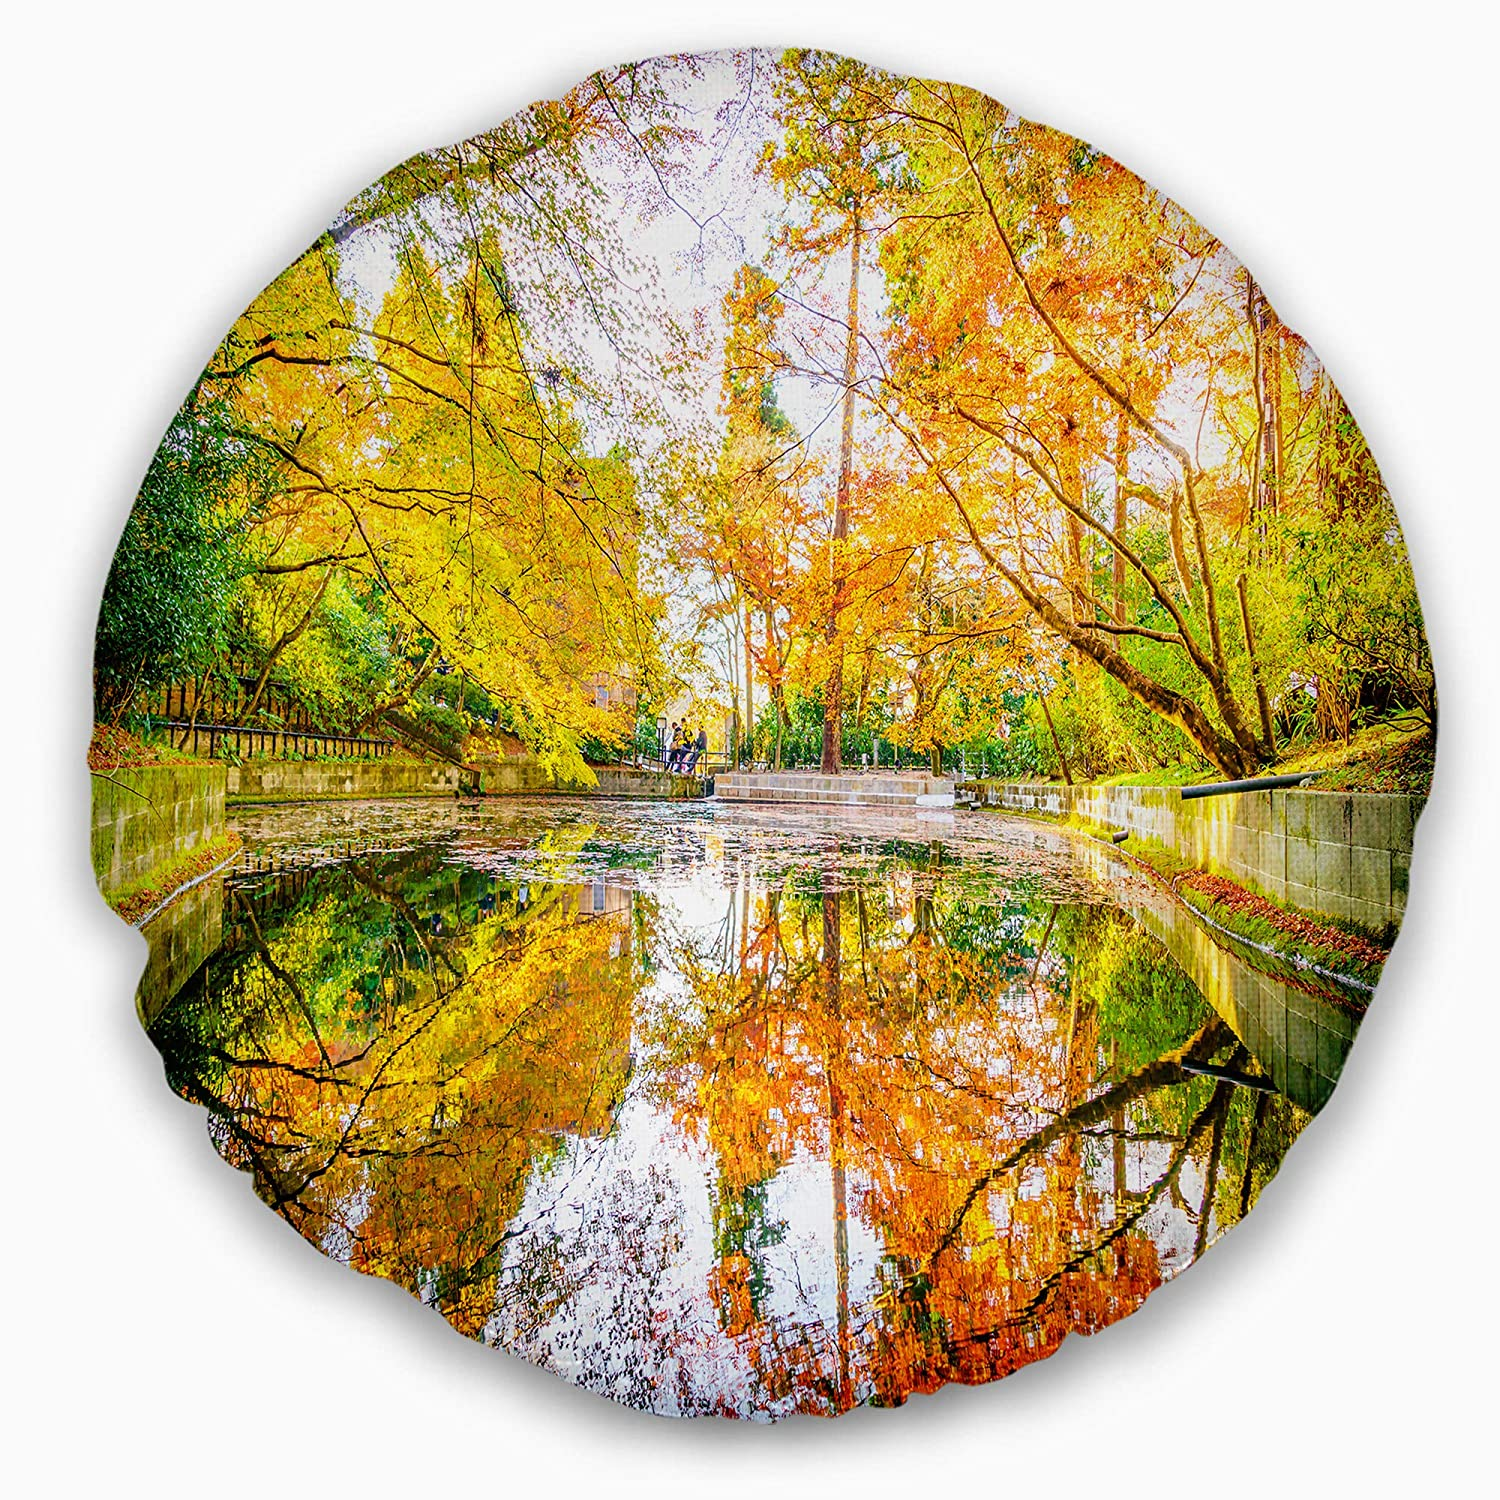 20 Designart CU15429-20-20-C Bright Fall Forest with River Landscape Printed Round Cushion Cover for Living Room Sofa Throw Pillow